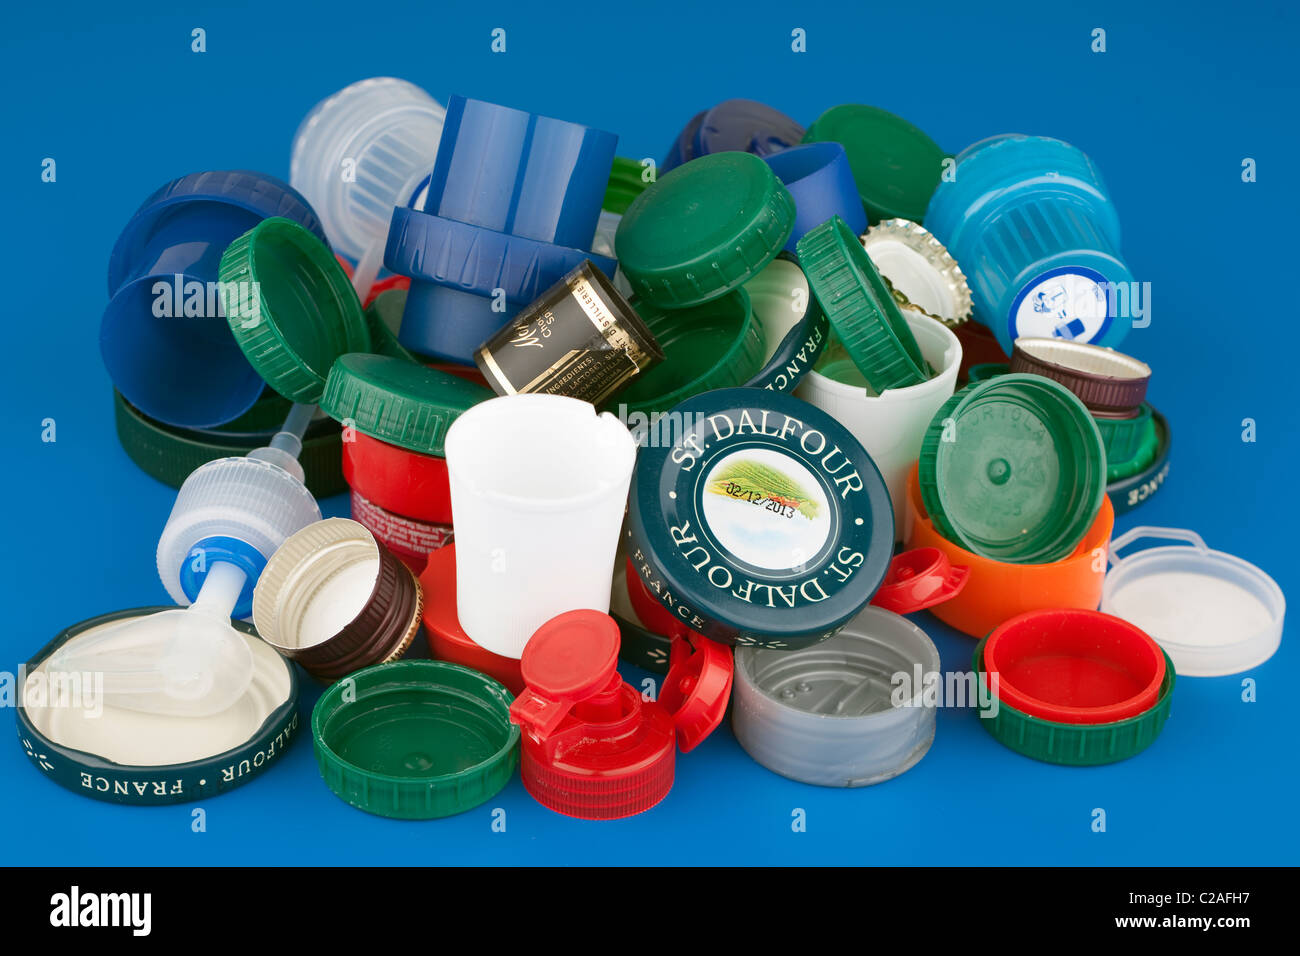 Pile of mixed product bottle and jar tops - Stock Image